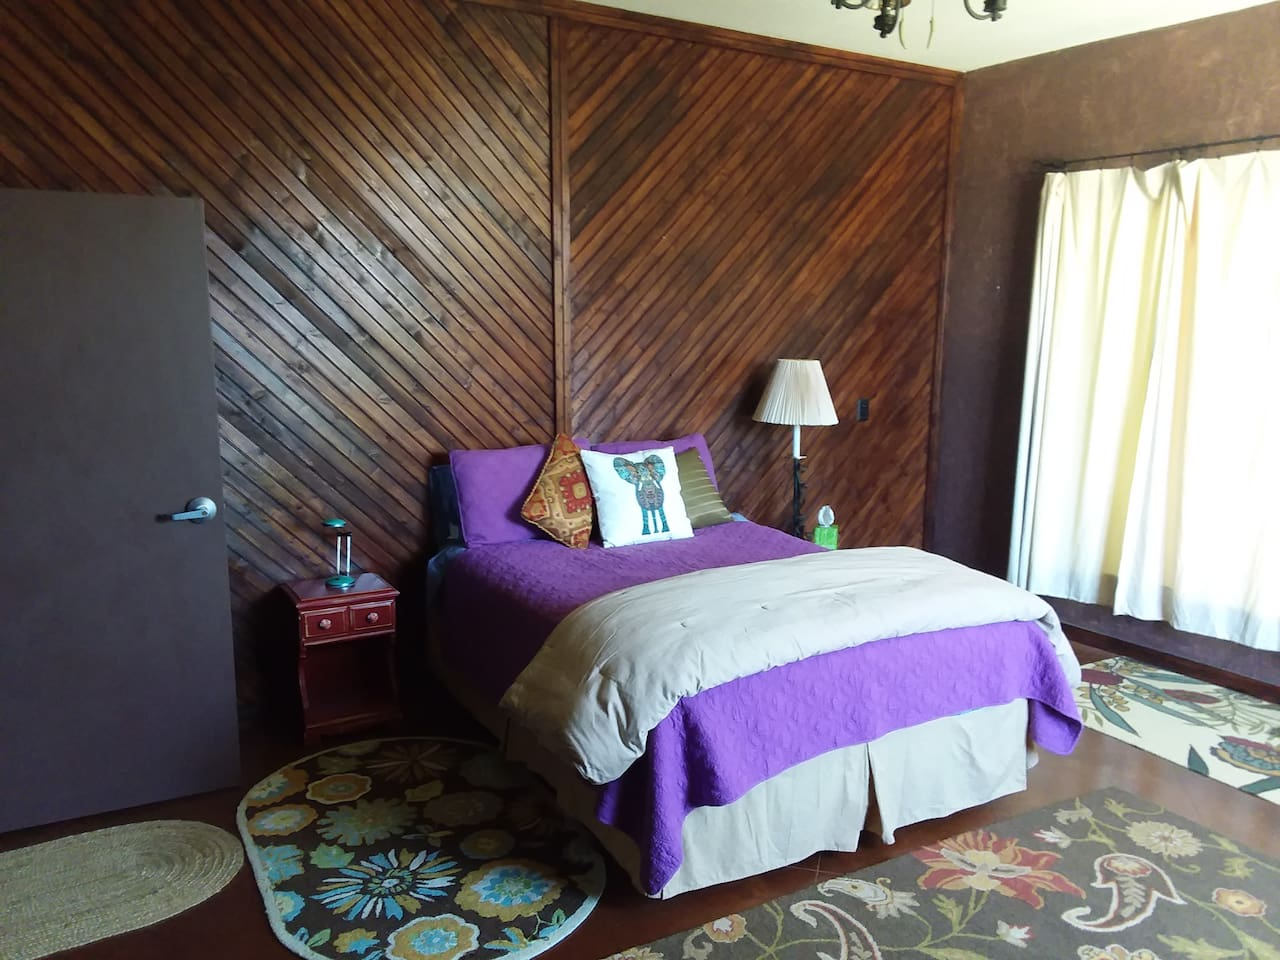 The large bedroom has a comfortable queen-sized bed and super-sized windows for sunset and storm viewing.